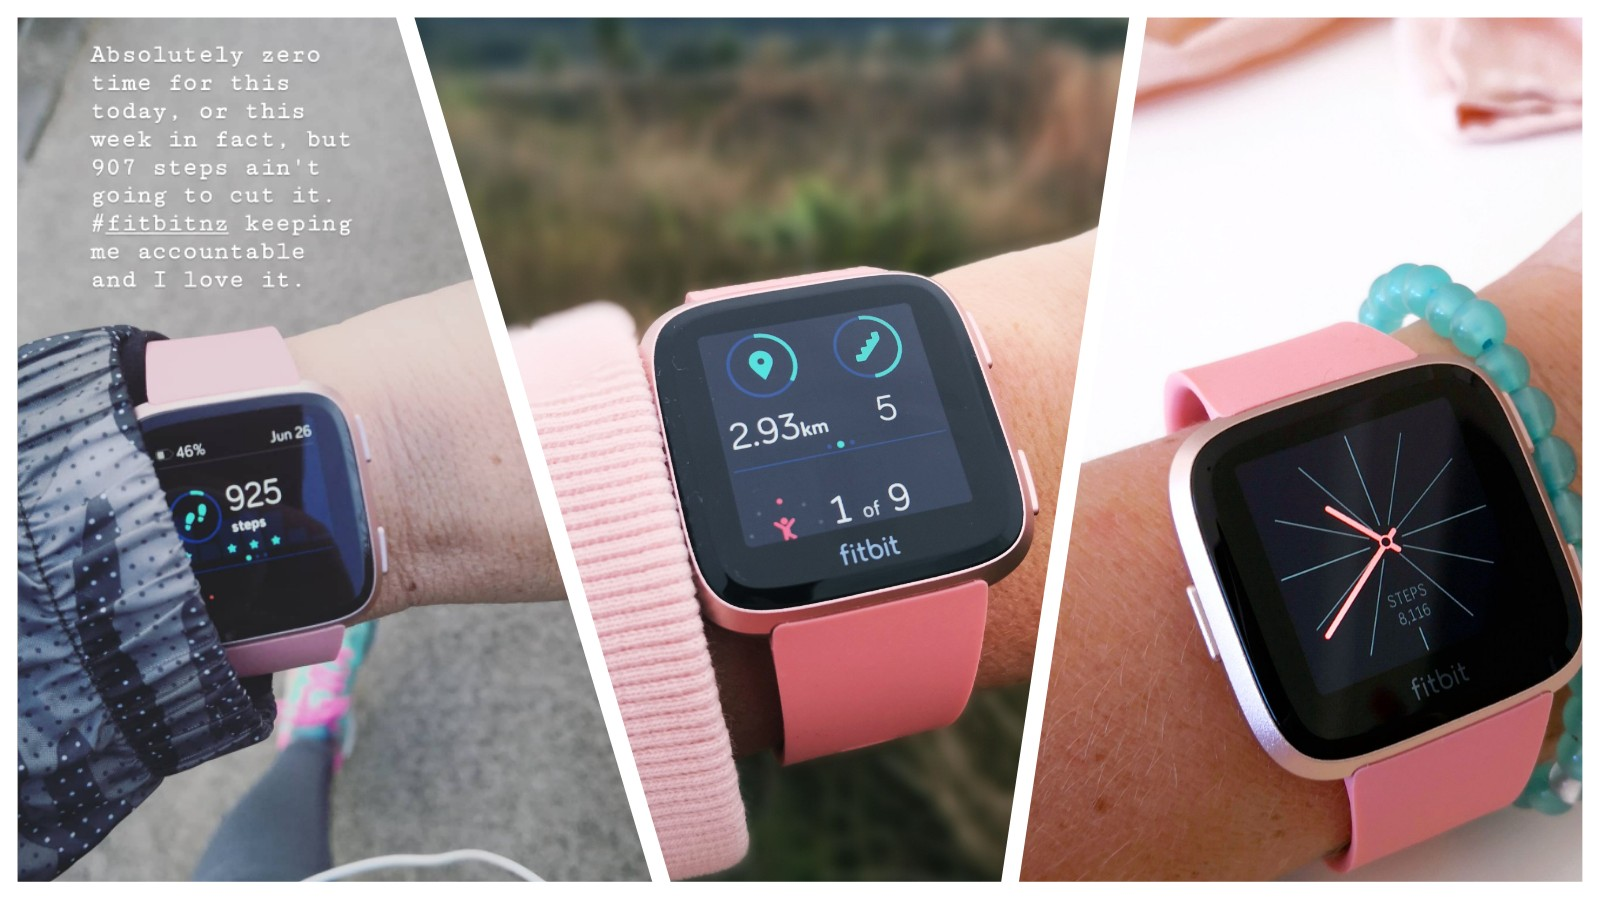 Fitbit Versa: My Winter #Fitspo